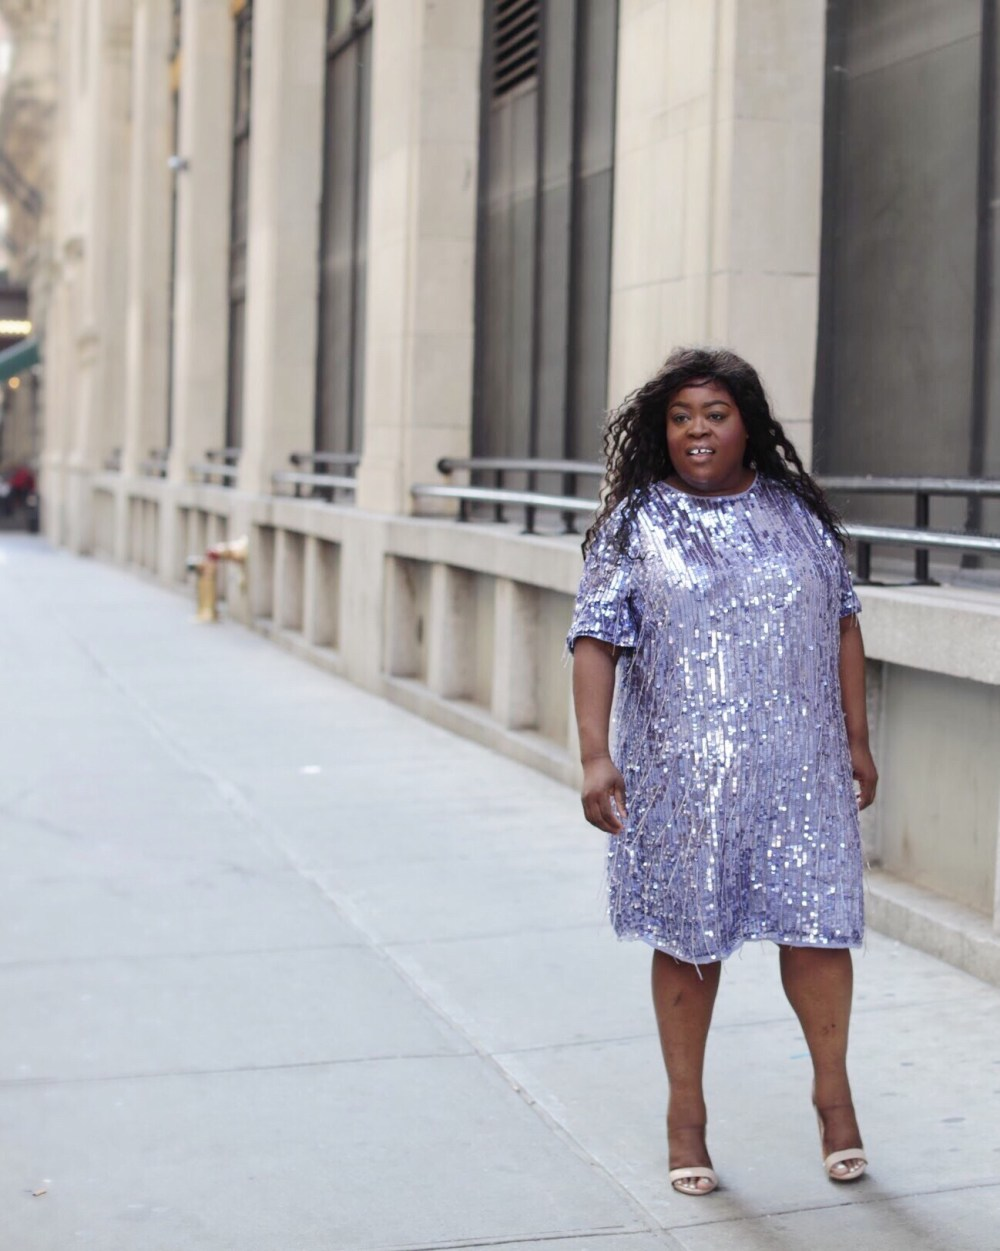 fall plus size fashion, plus size party dresses, plus size sequin dress, plus size holiday looks